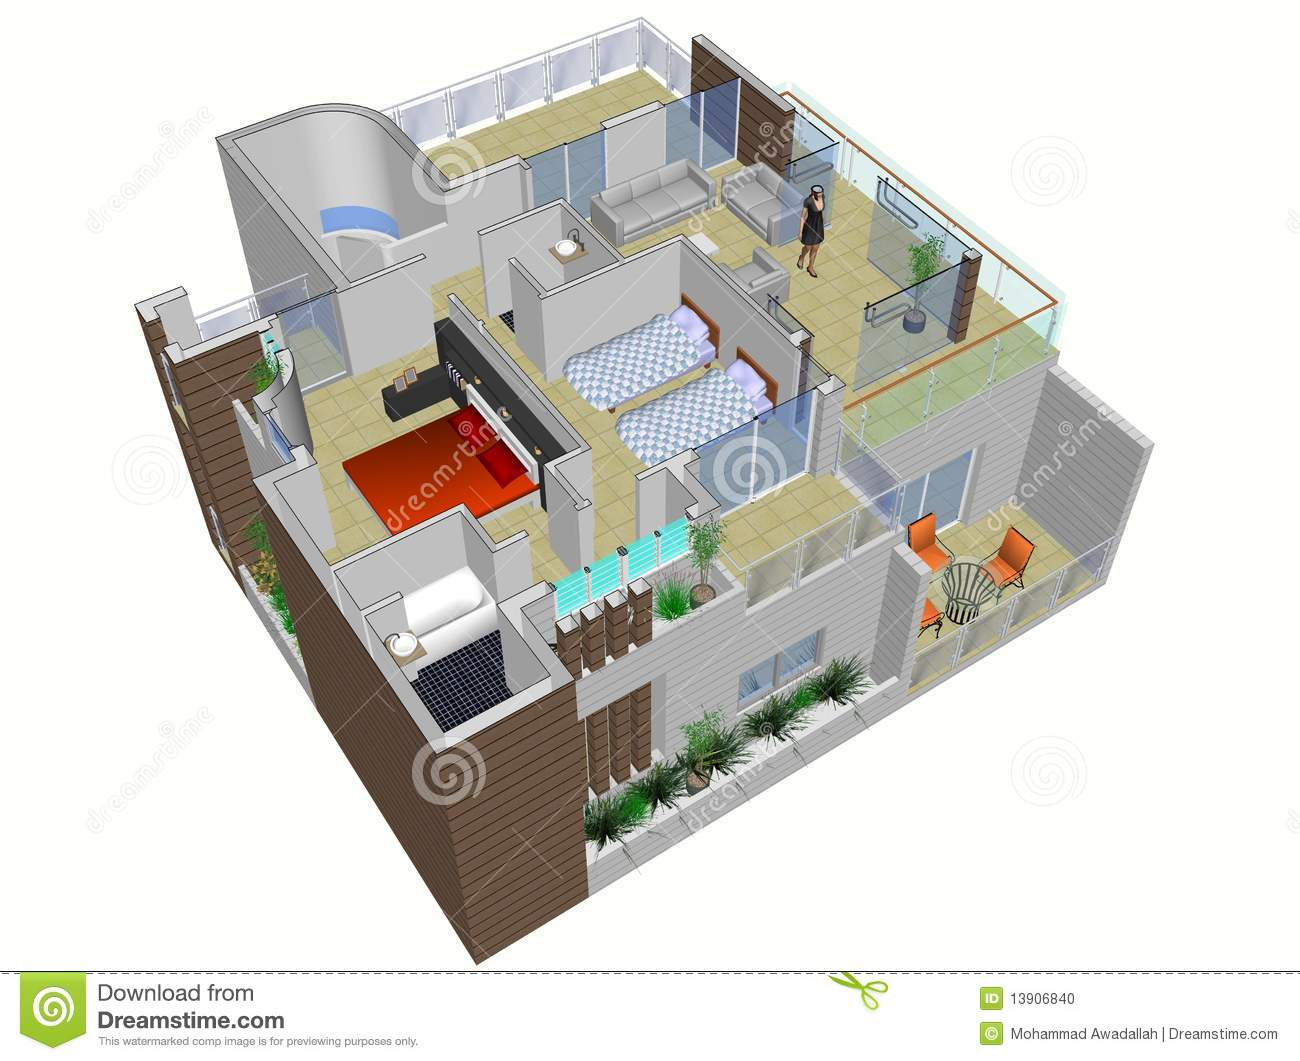 Architecture Design House Plans Architectural Plan Of House Stock Illustration Image